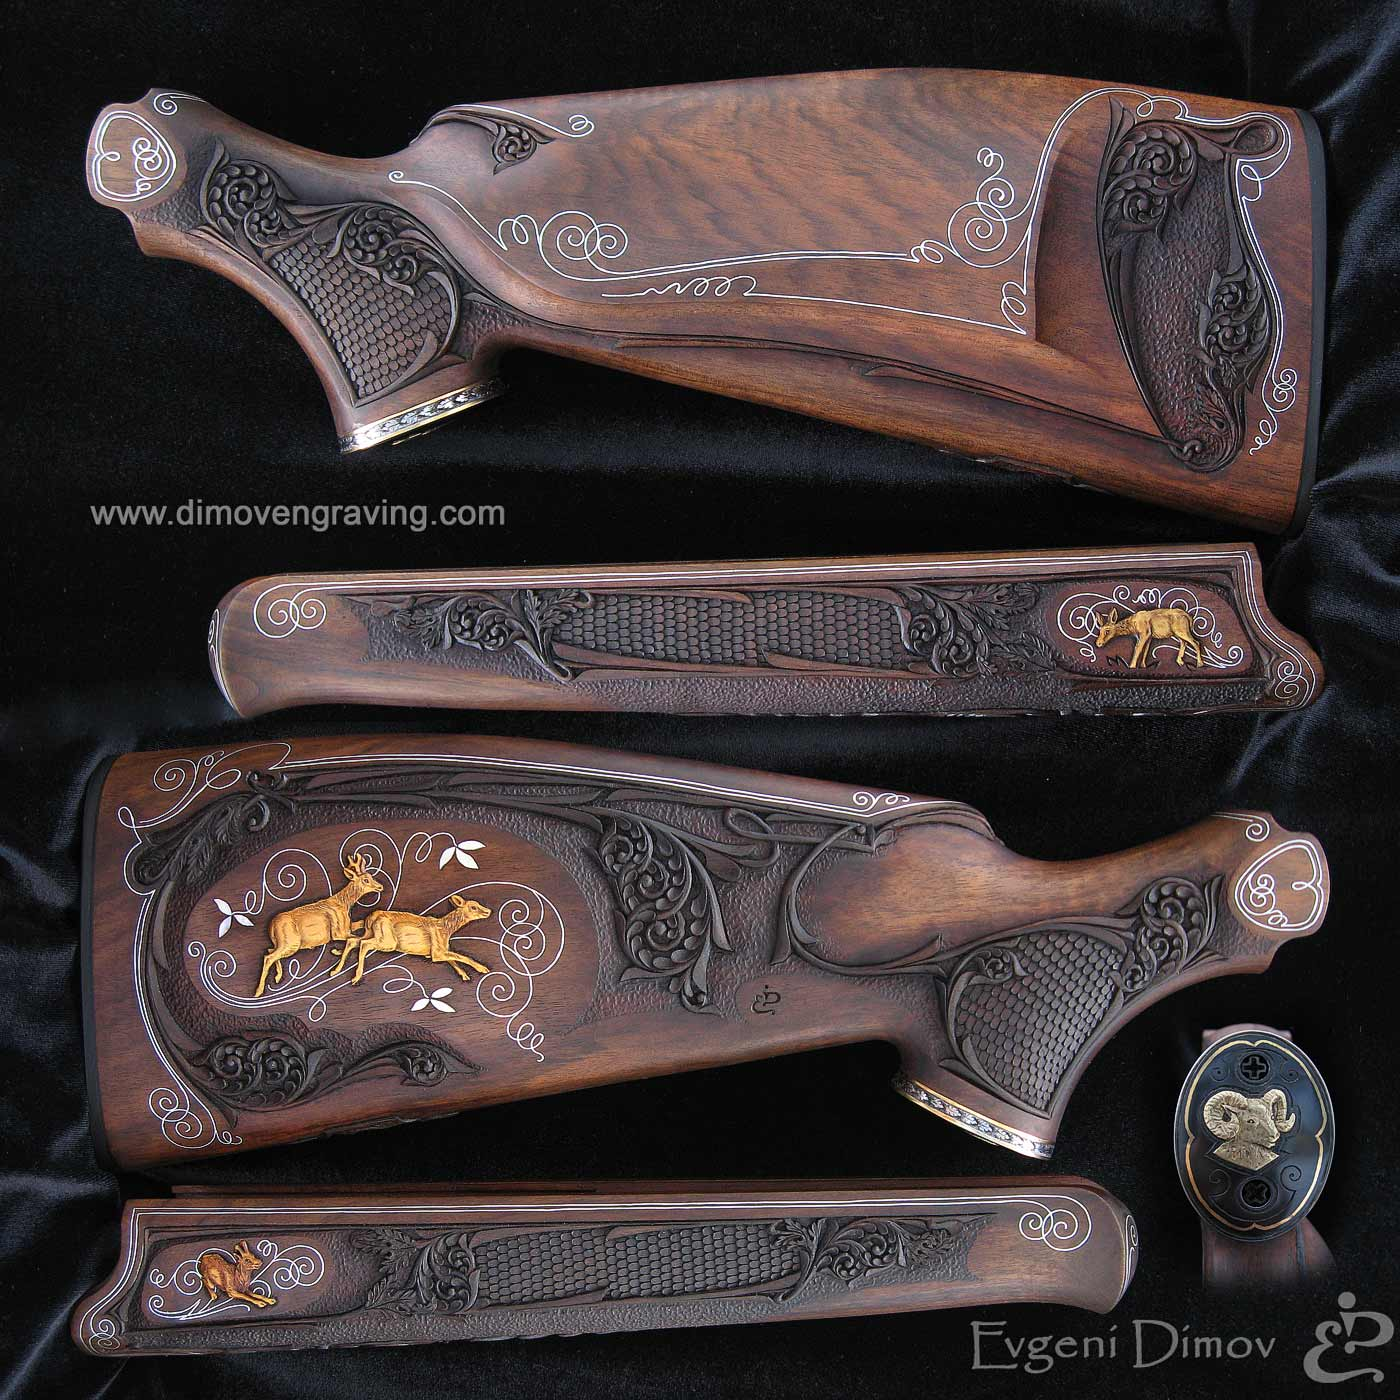 Gallery gunstocks evgeni dimov hand engraving